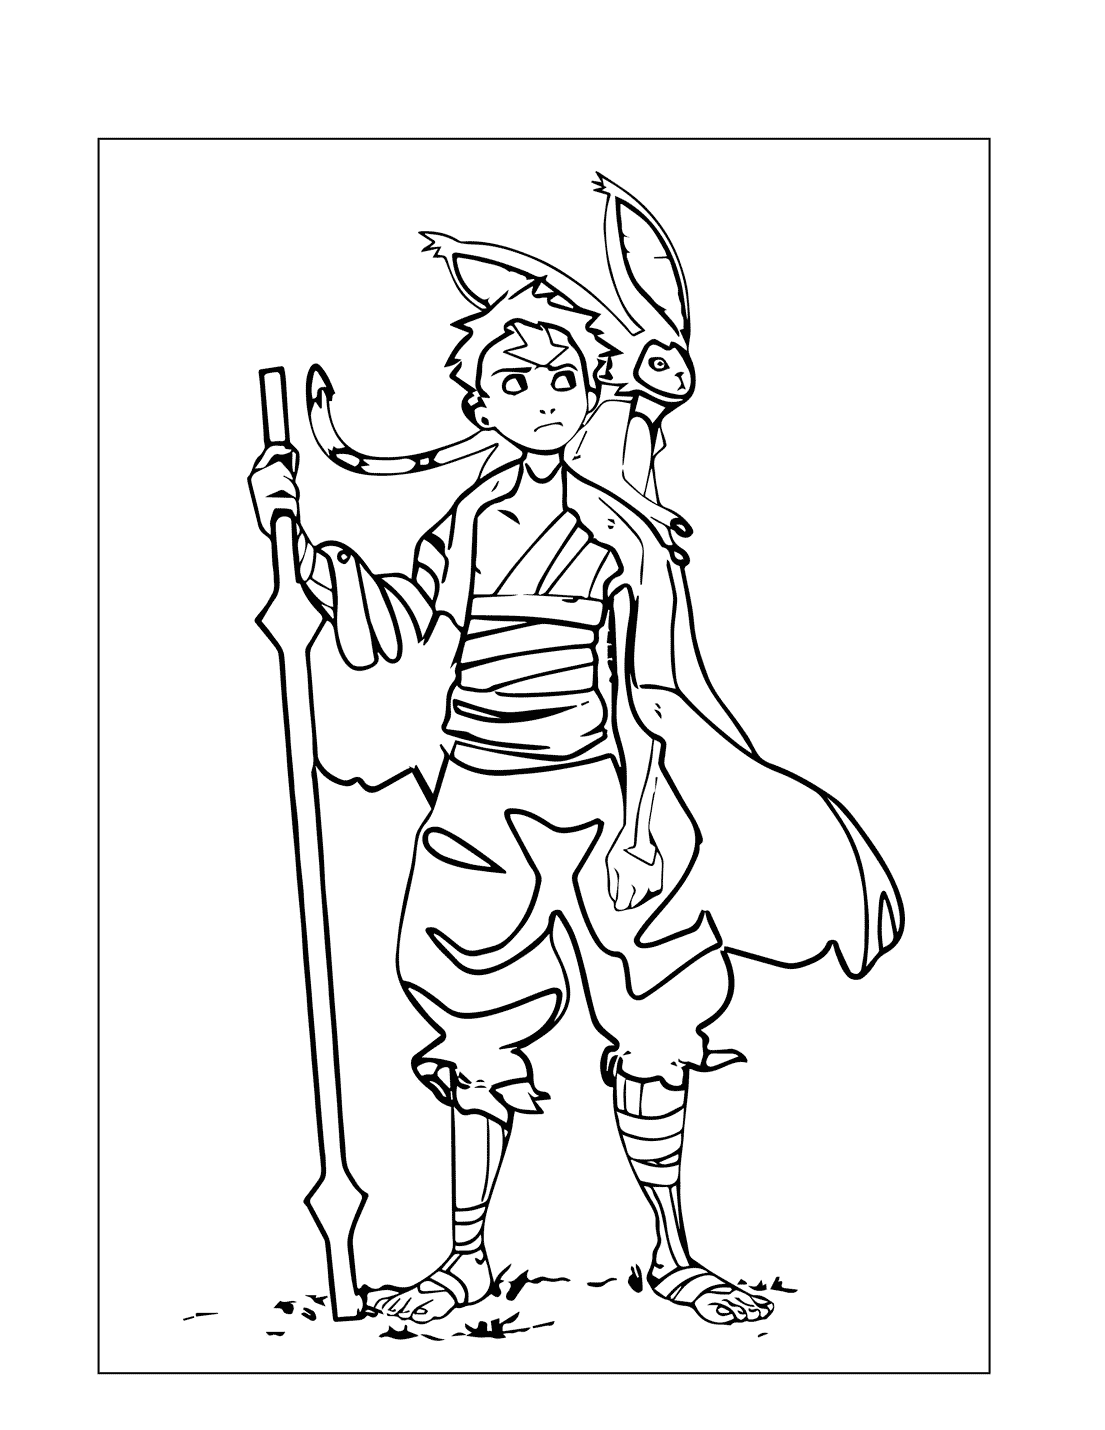 Older Aang Avatar Coloring Page